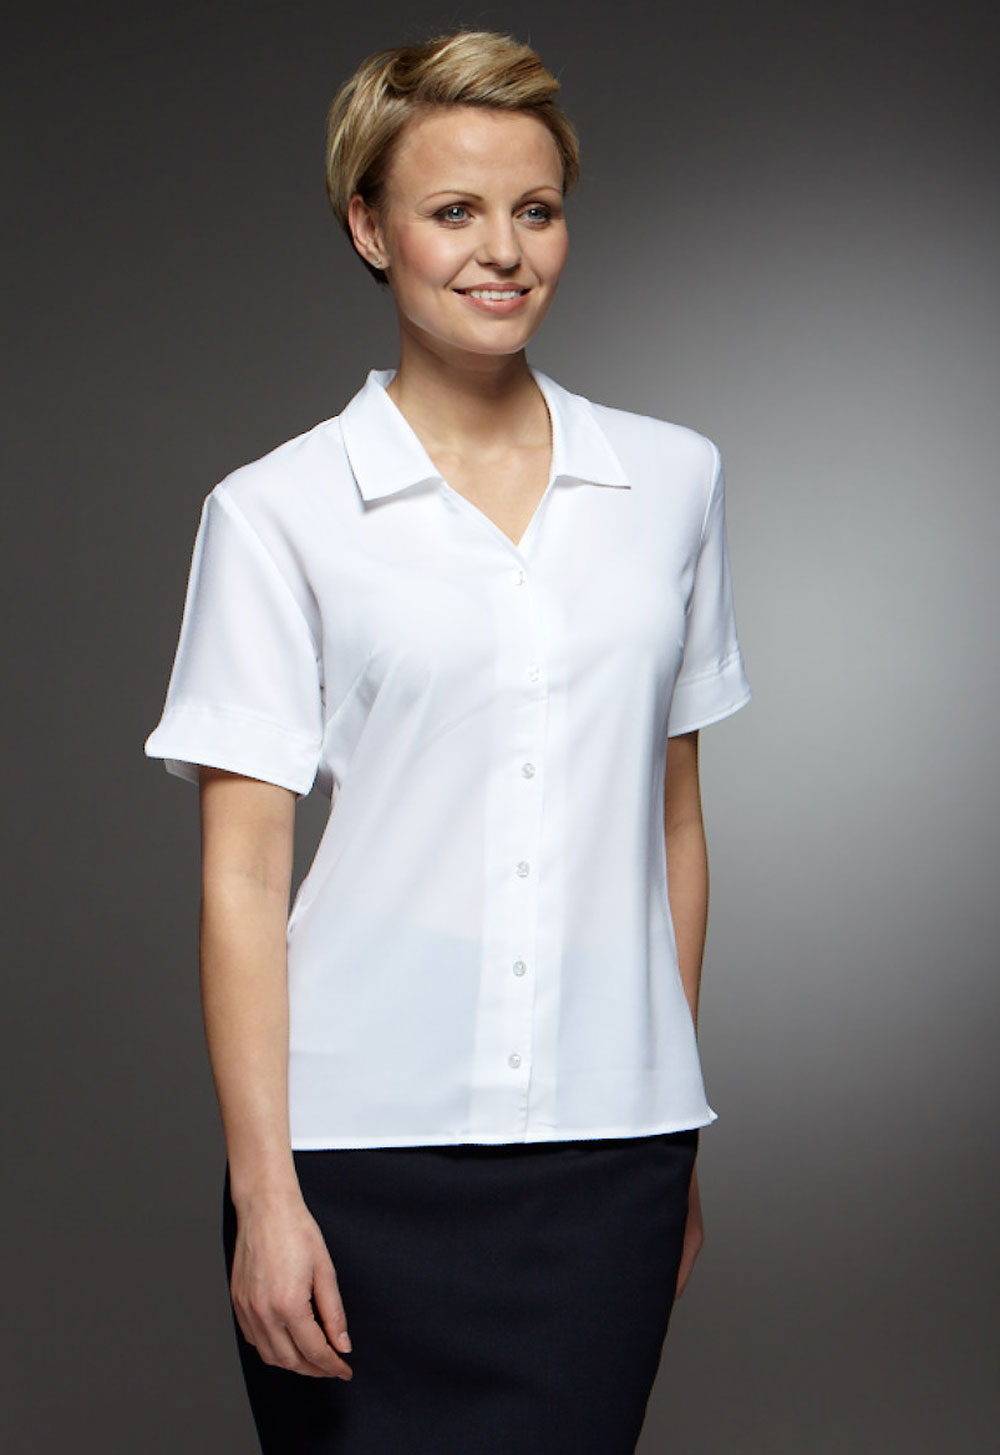 womens work shirts and blouses uk smart casual blouse